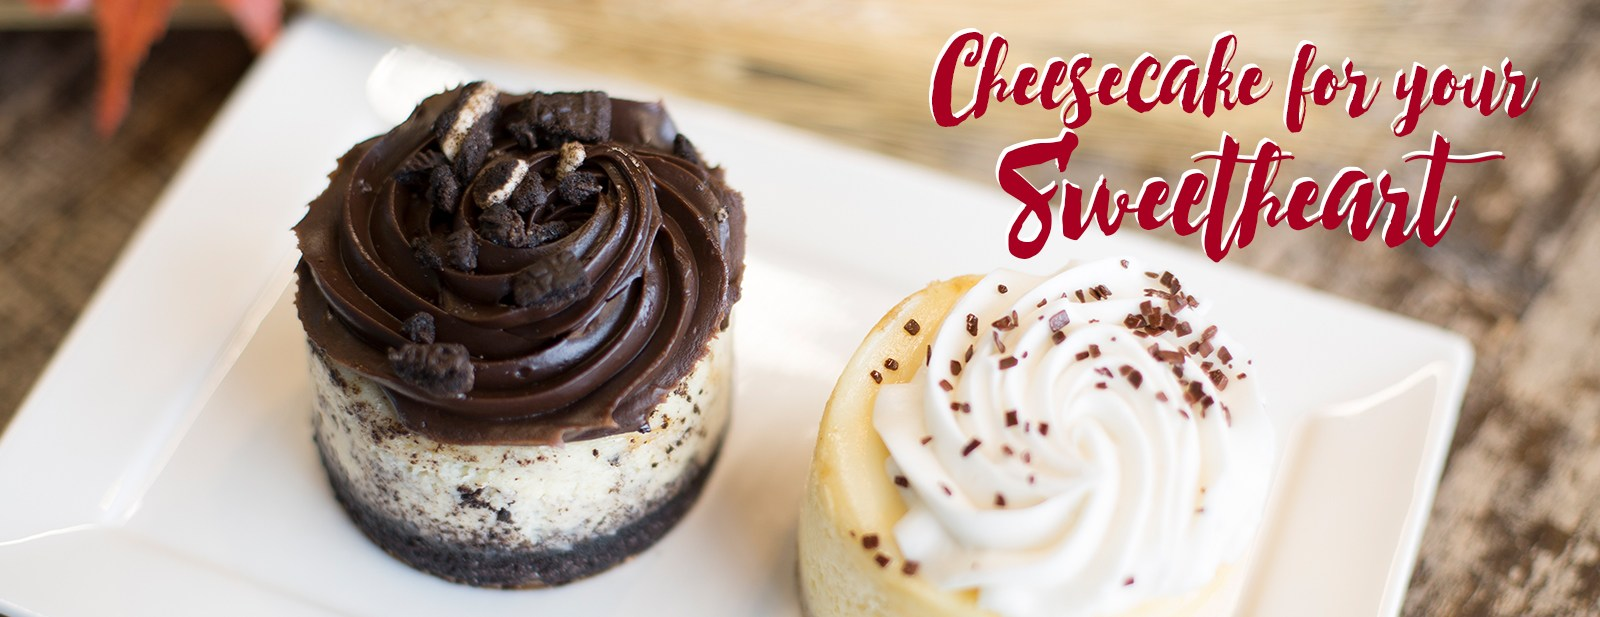 Cheesecake for your sweetheart!